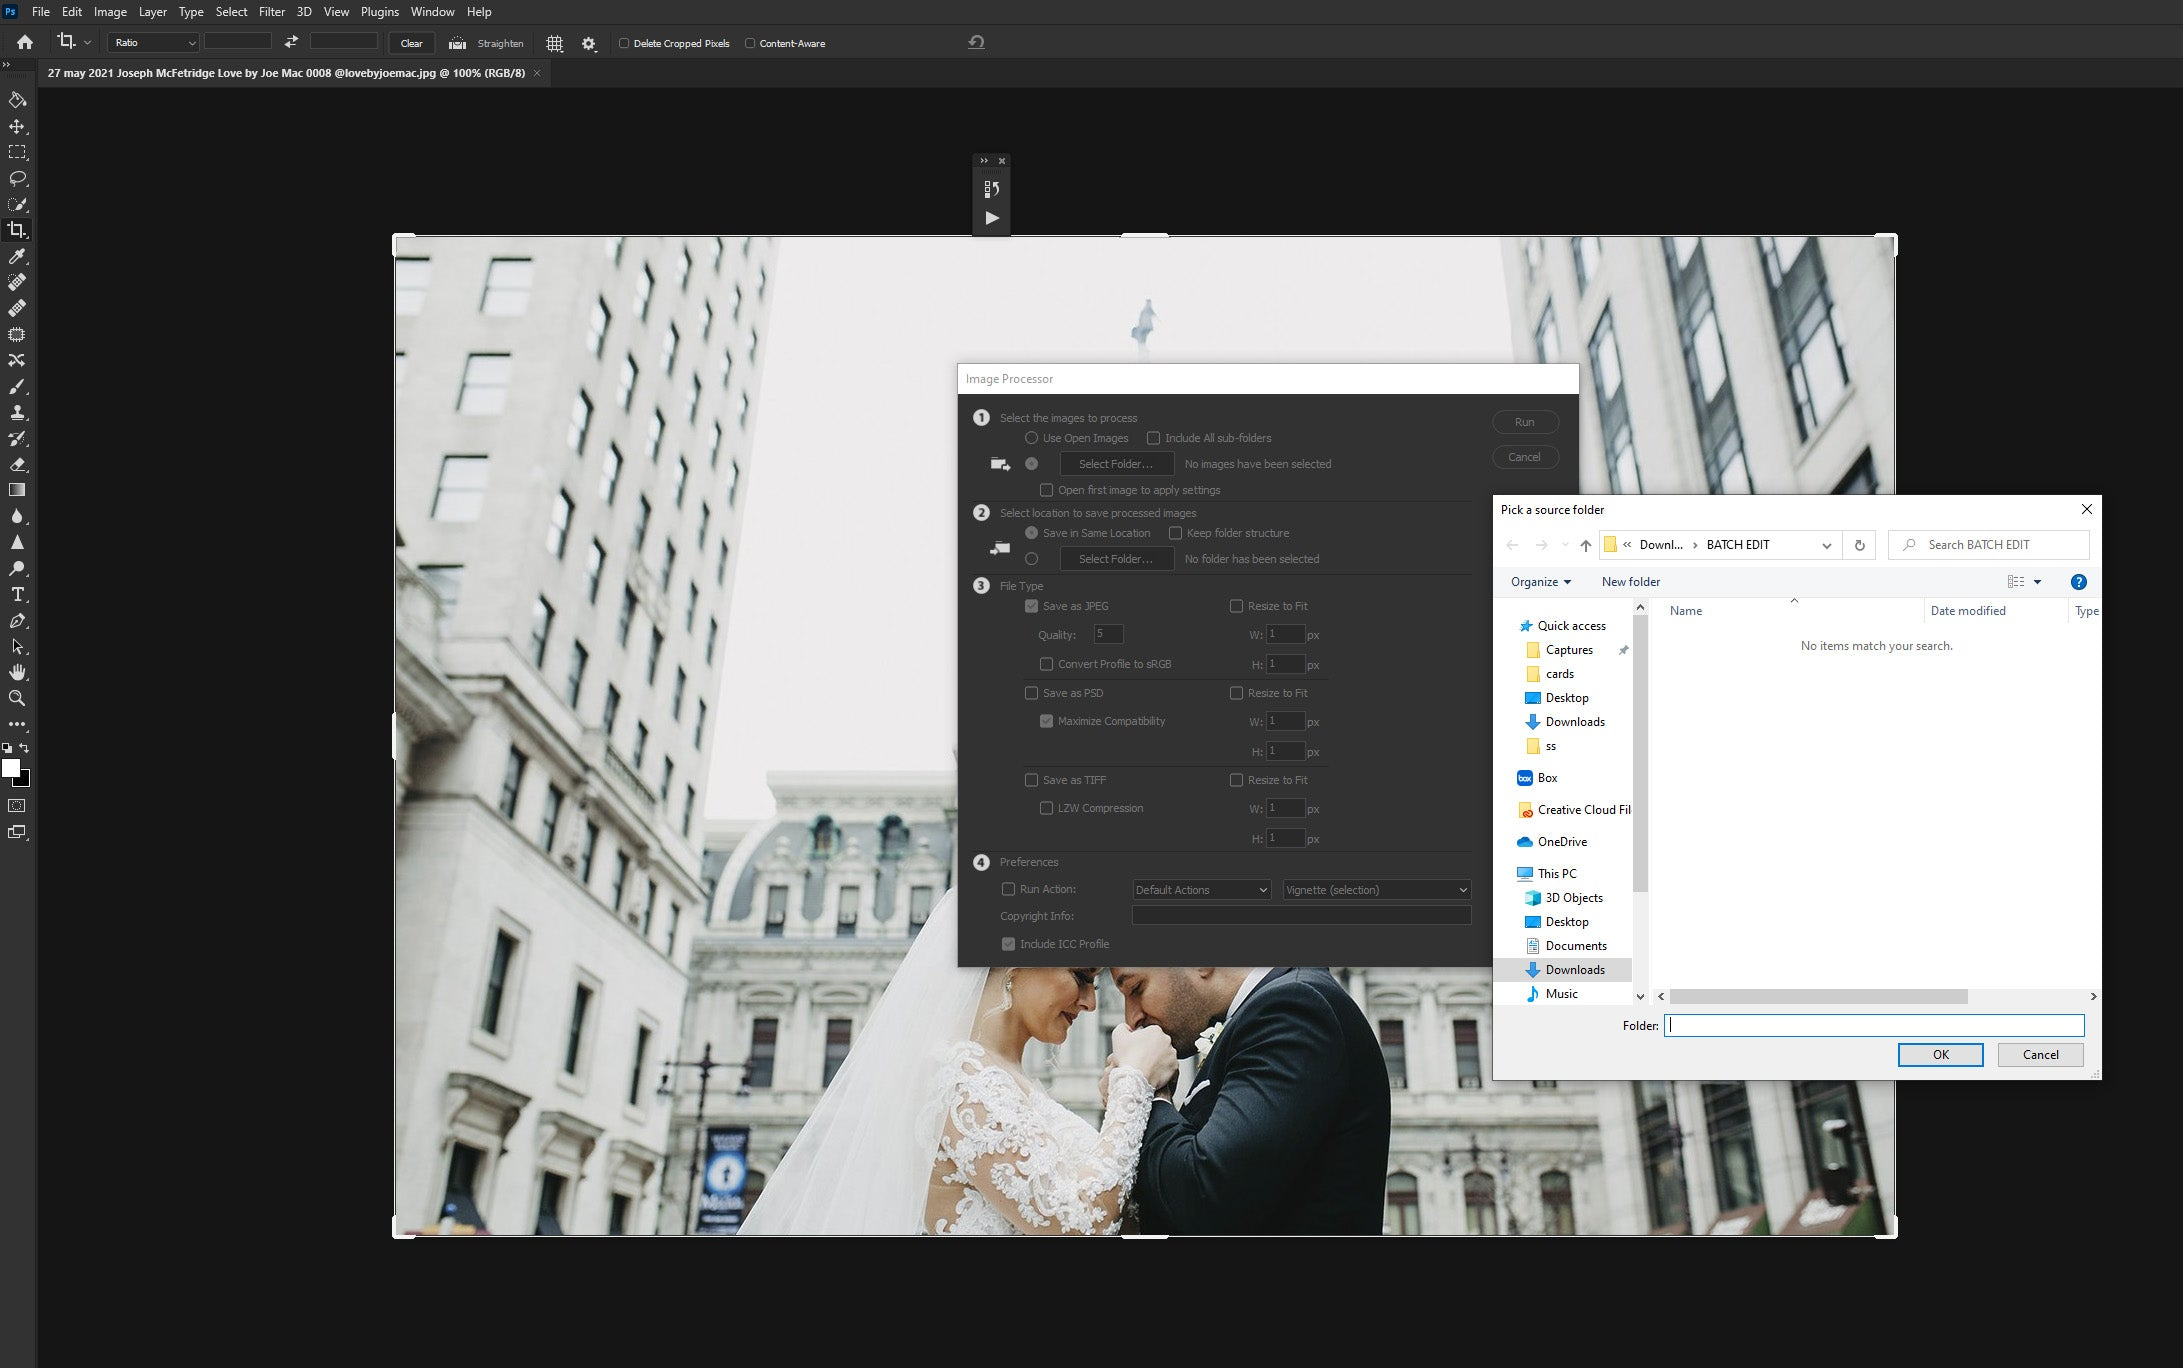 Running an action in Photoshop